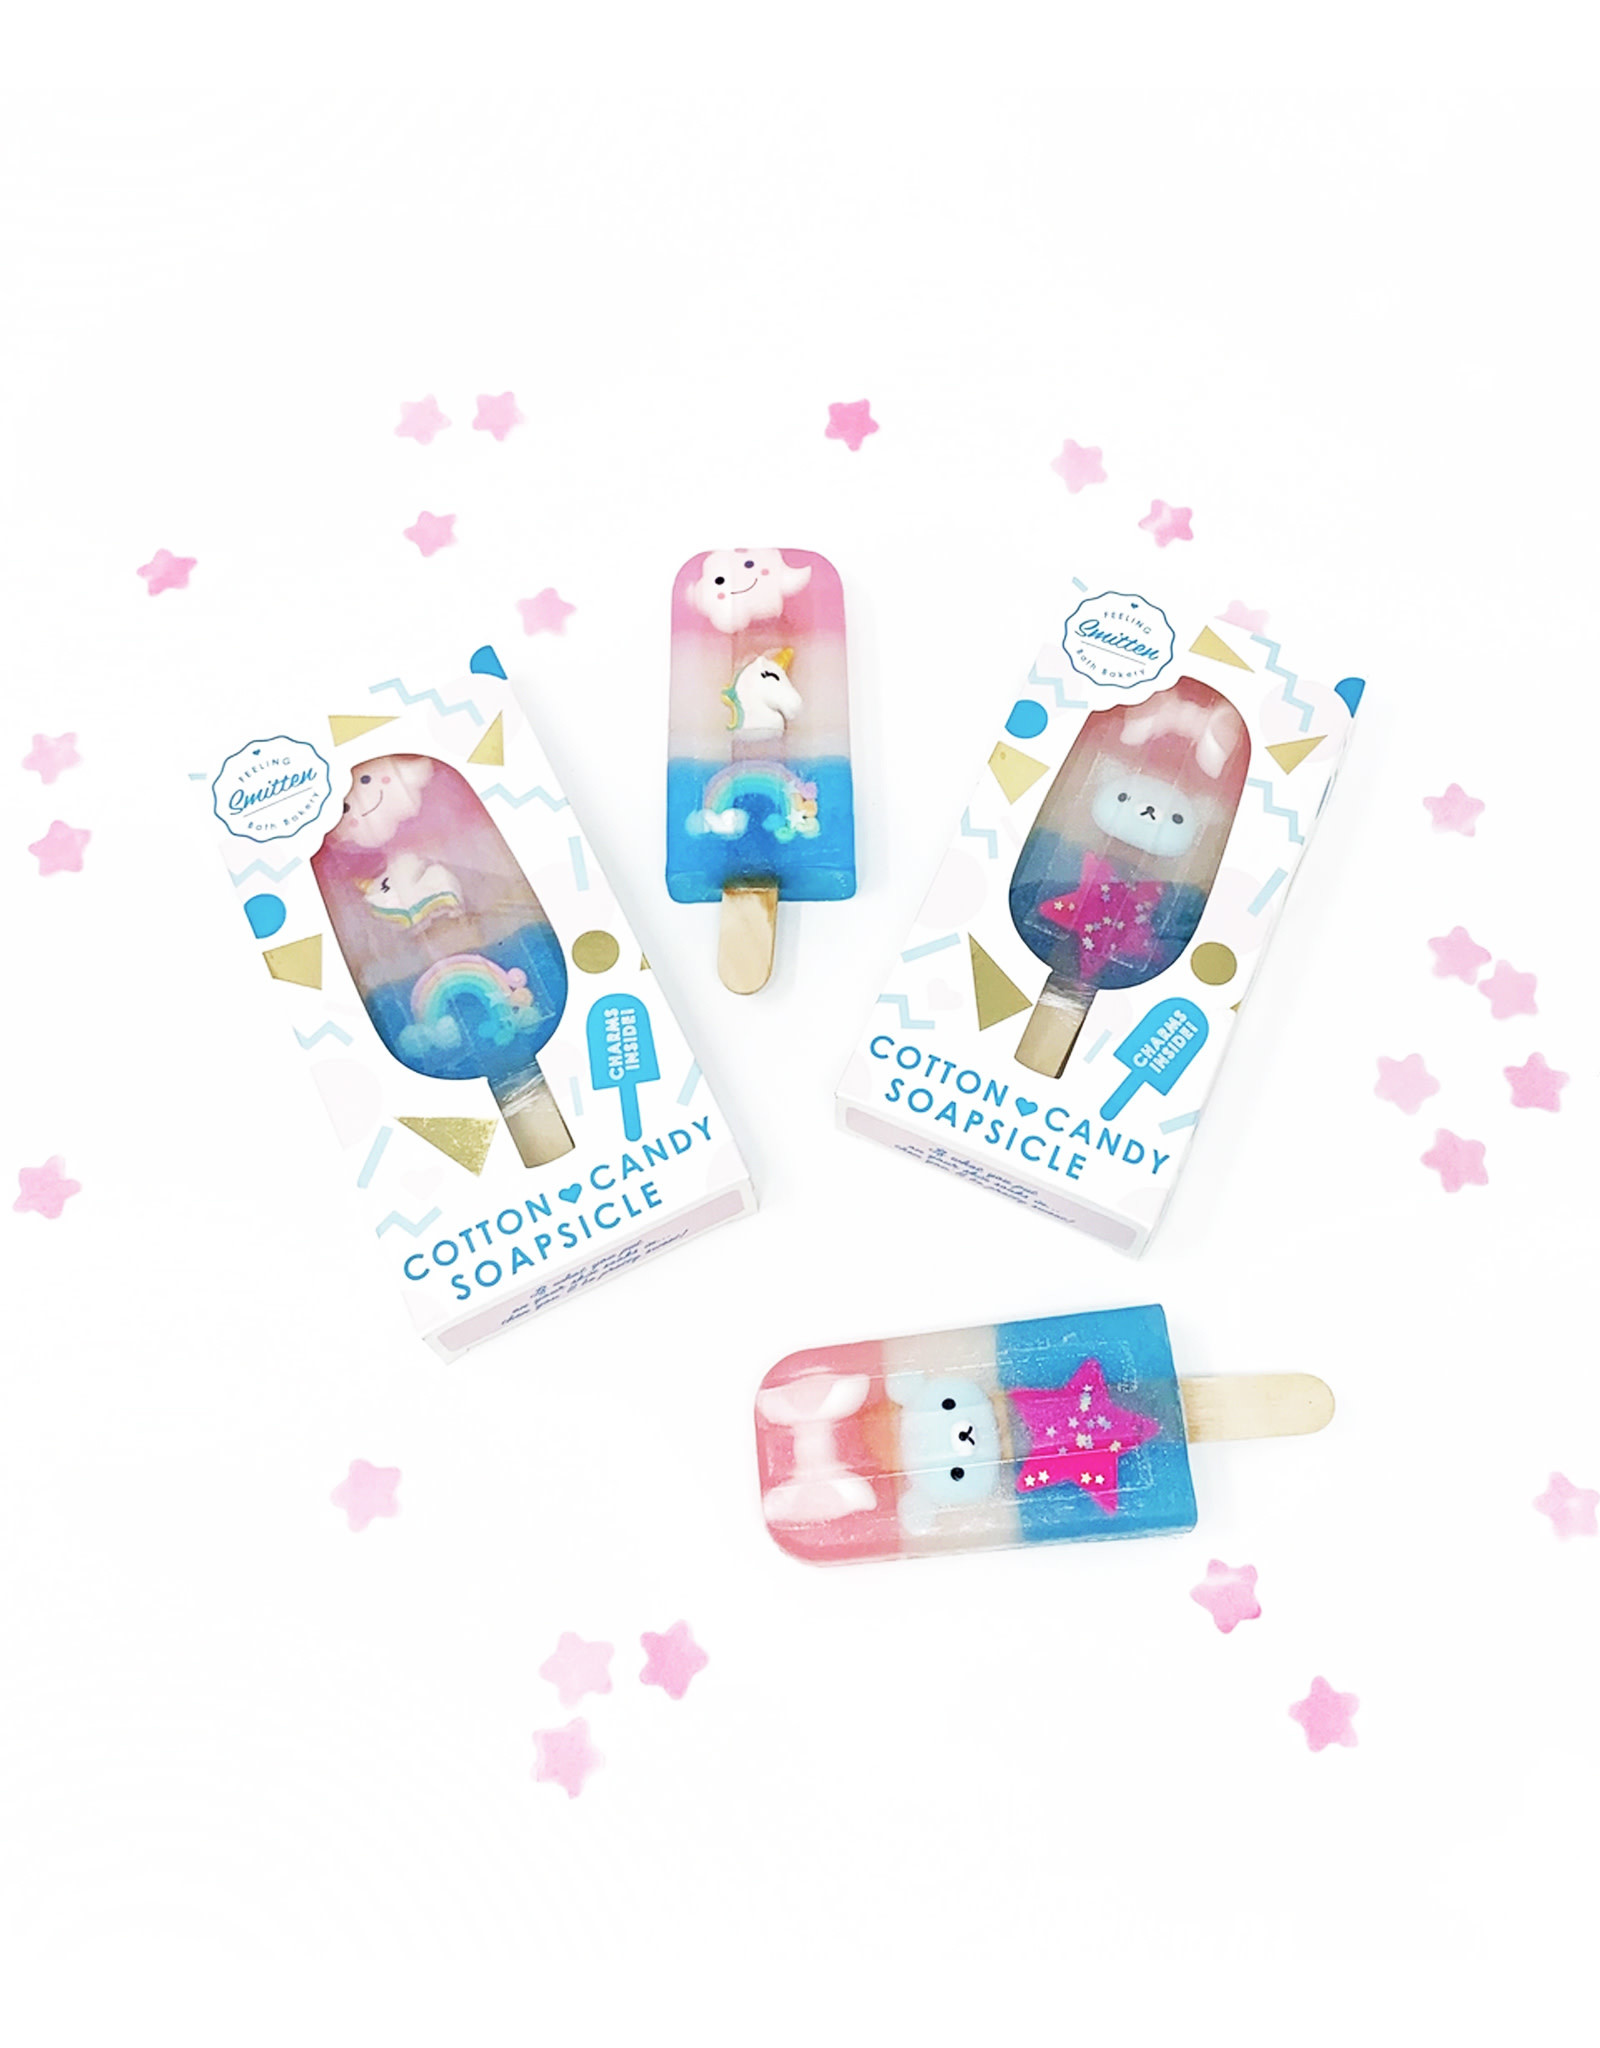 Feeling Smitten Cotton Candy Soapsicle w/ Charm Trio